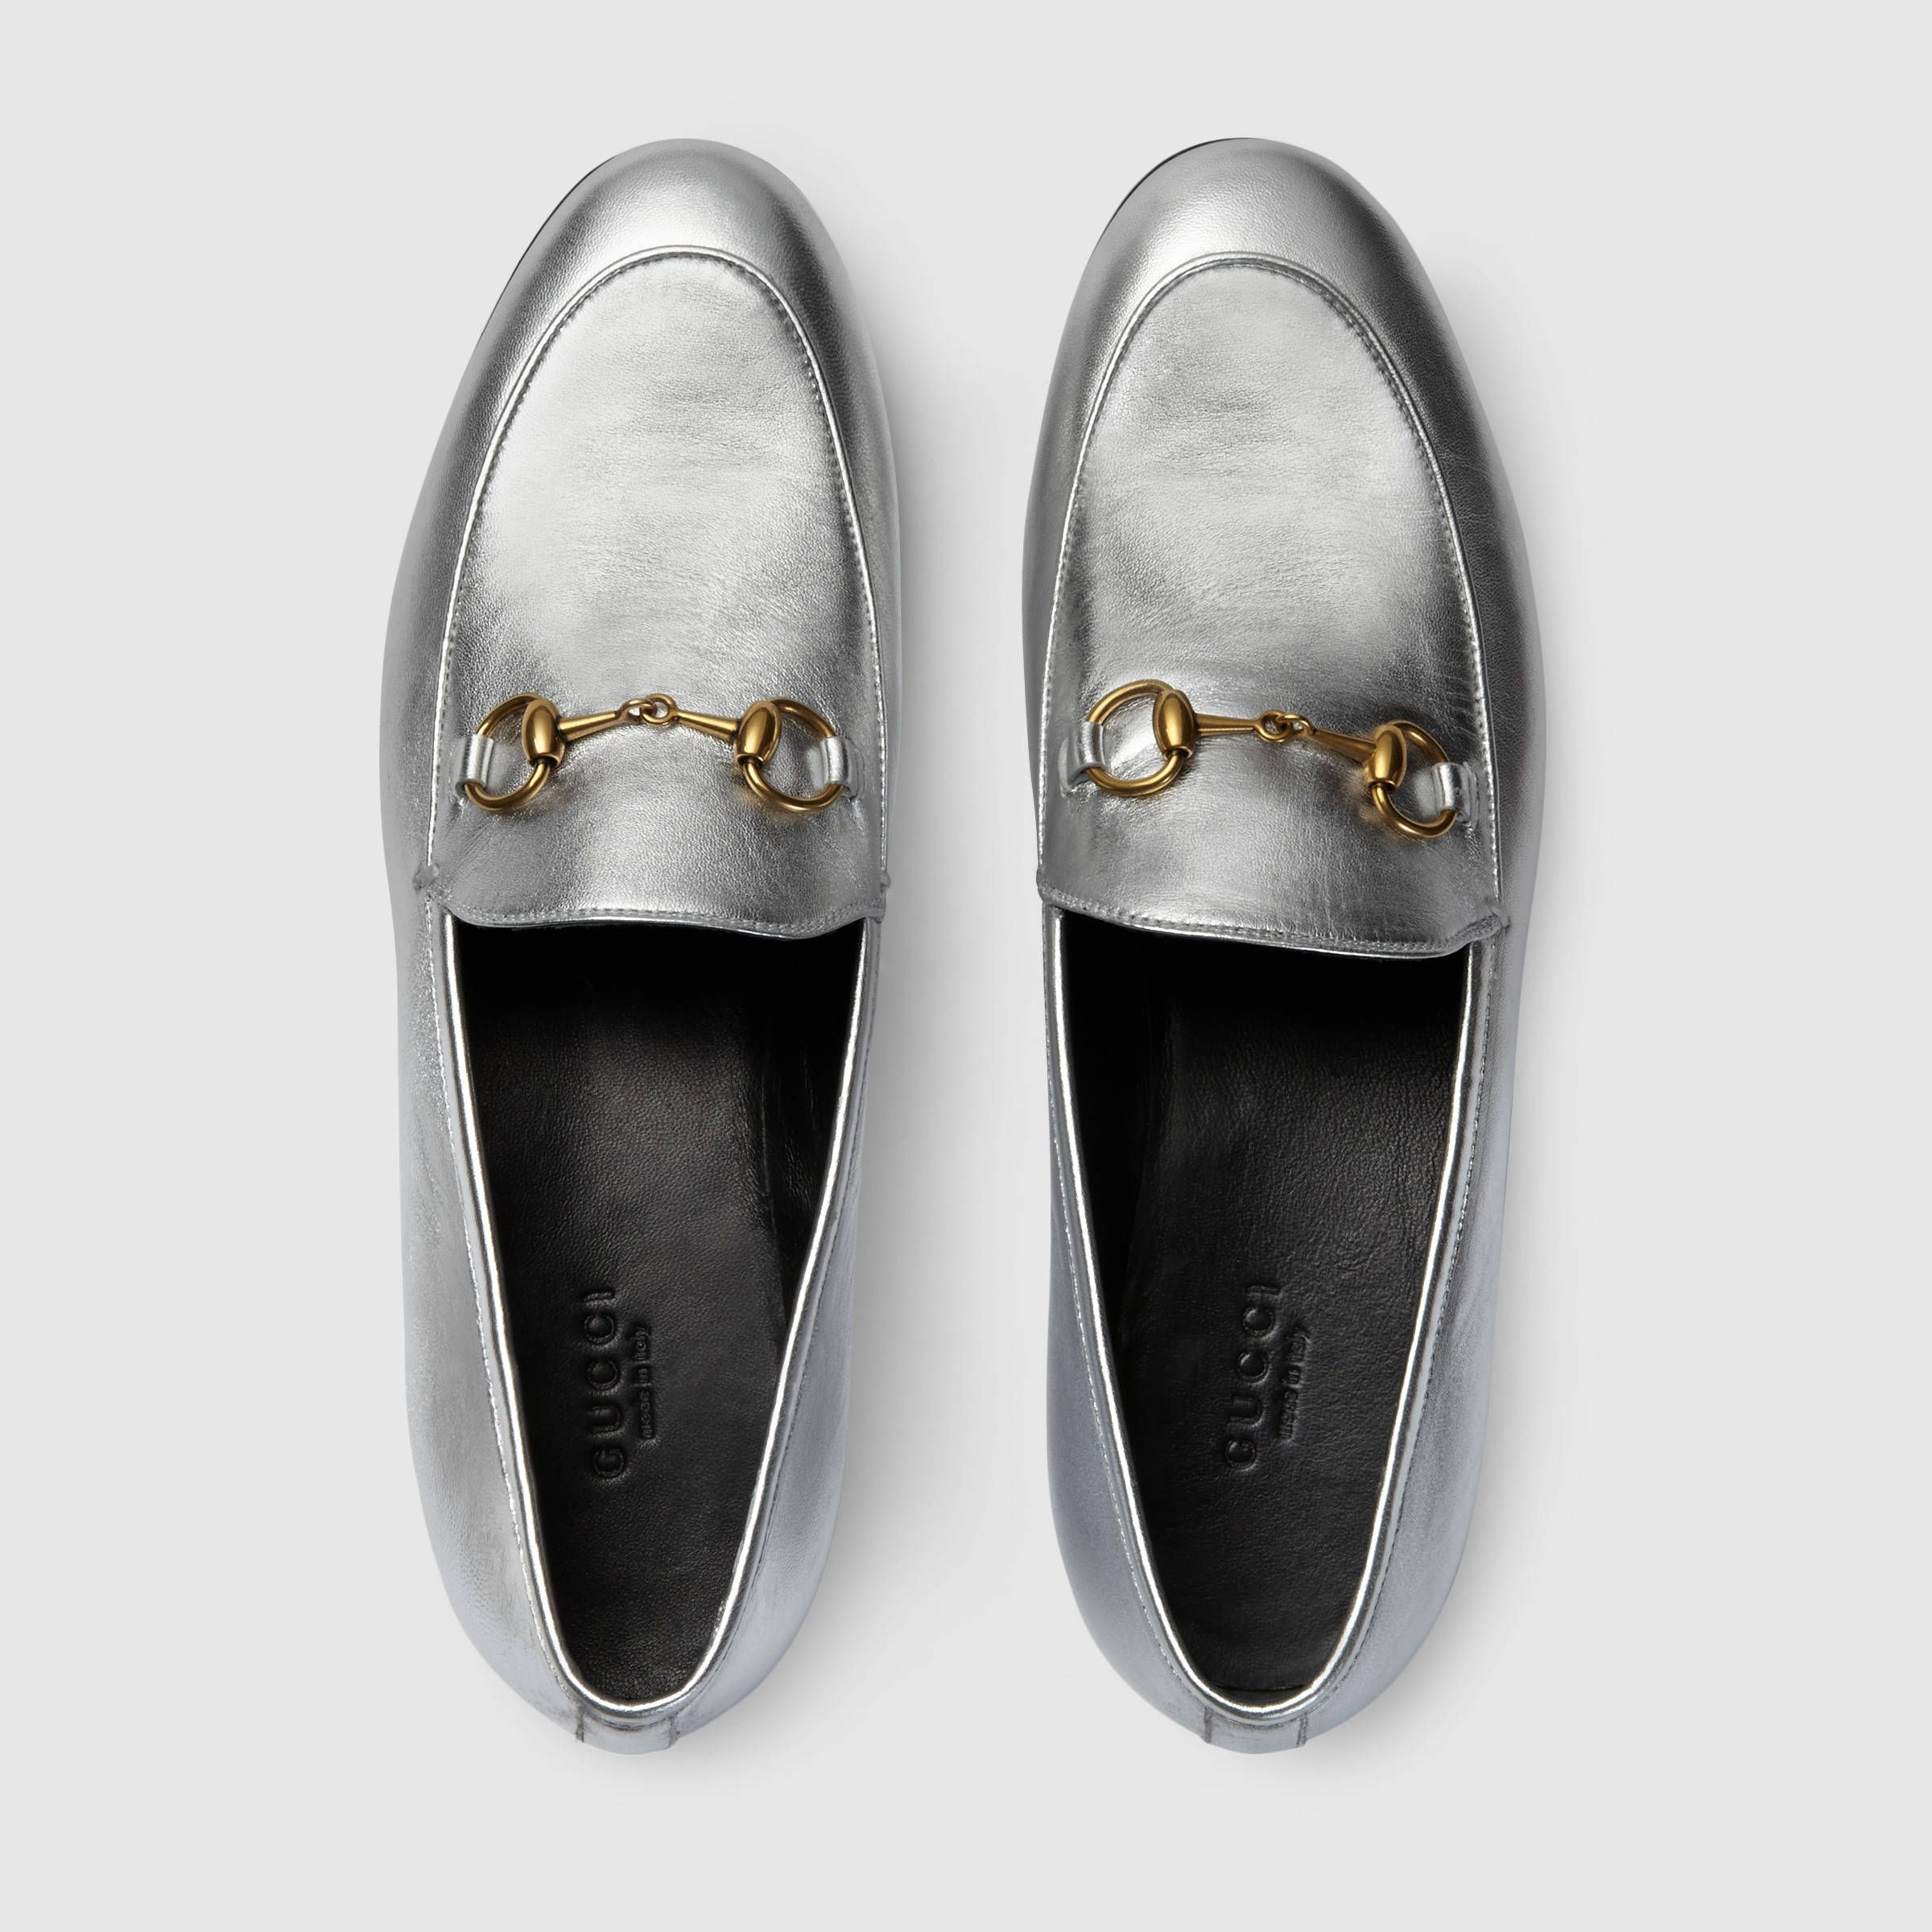 Gucci Women - Gucci Jordaan Metallic Silver Loafers -  670.00 ... 70d9906a6f3fa